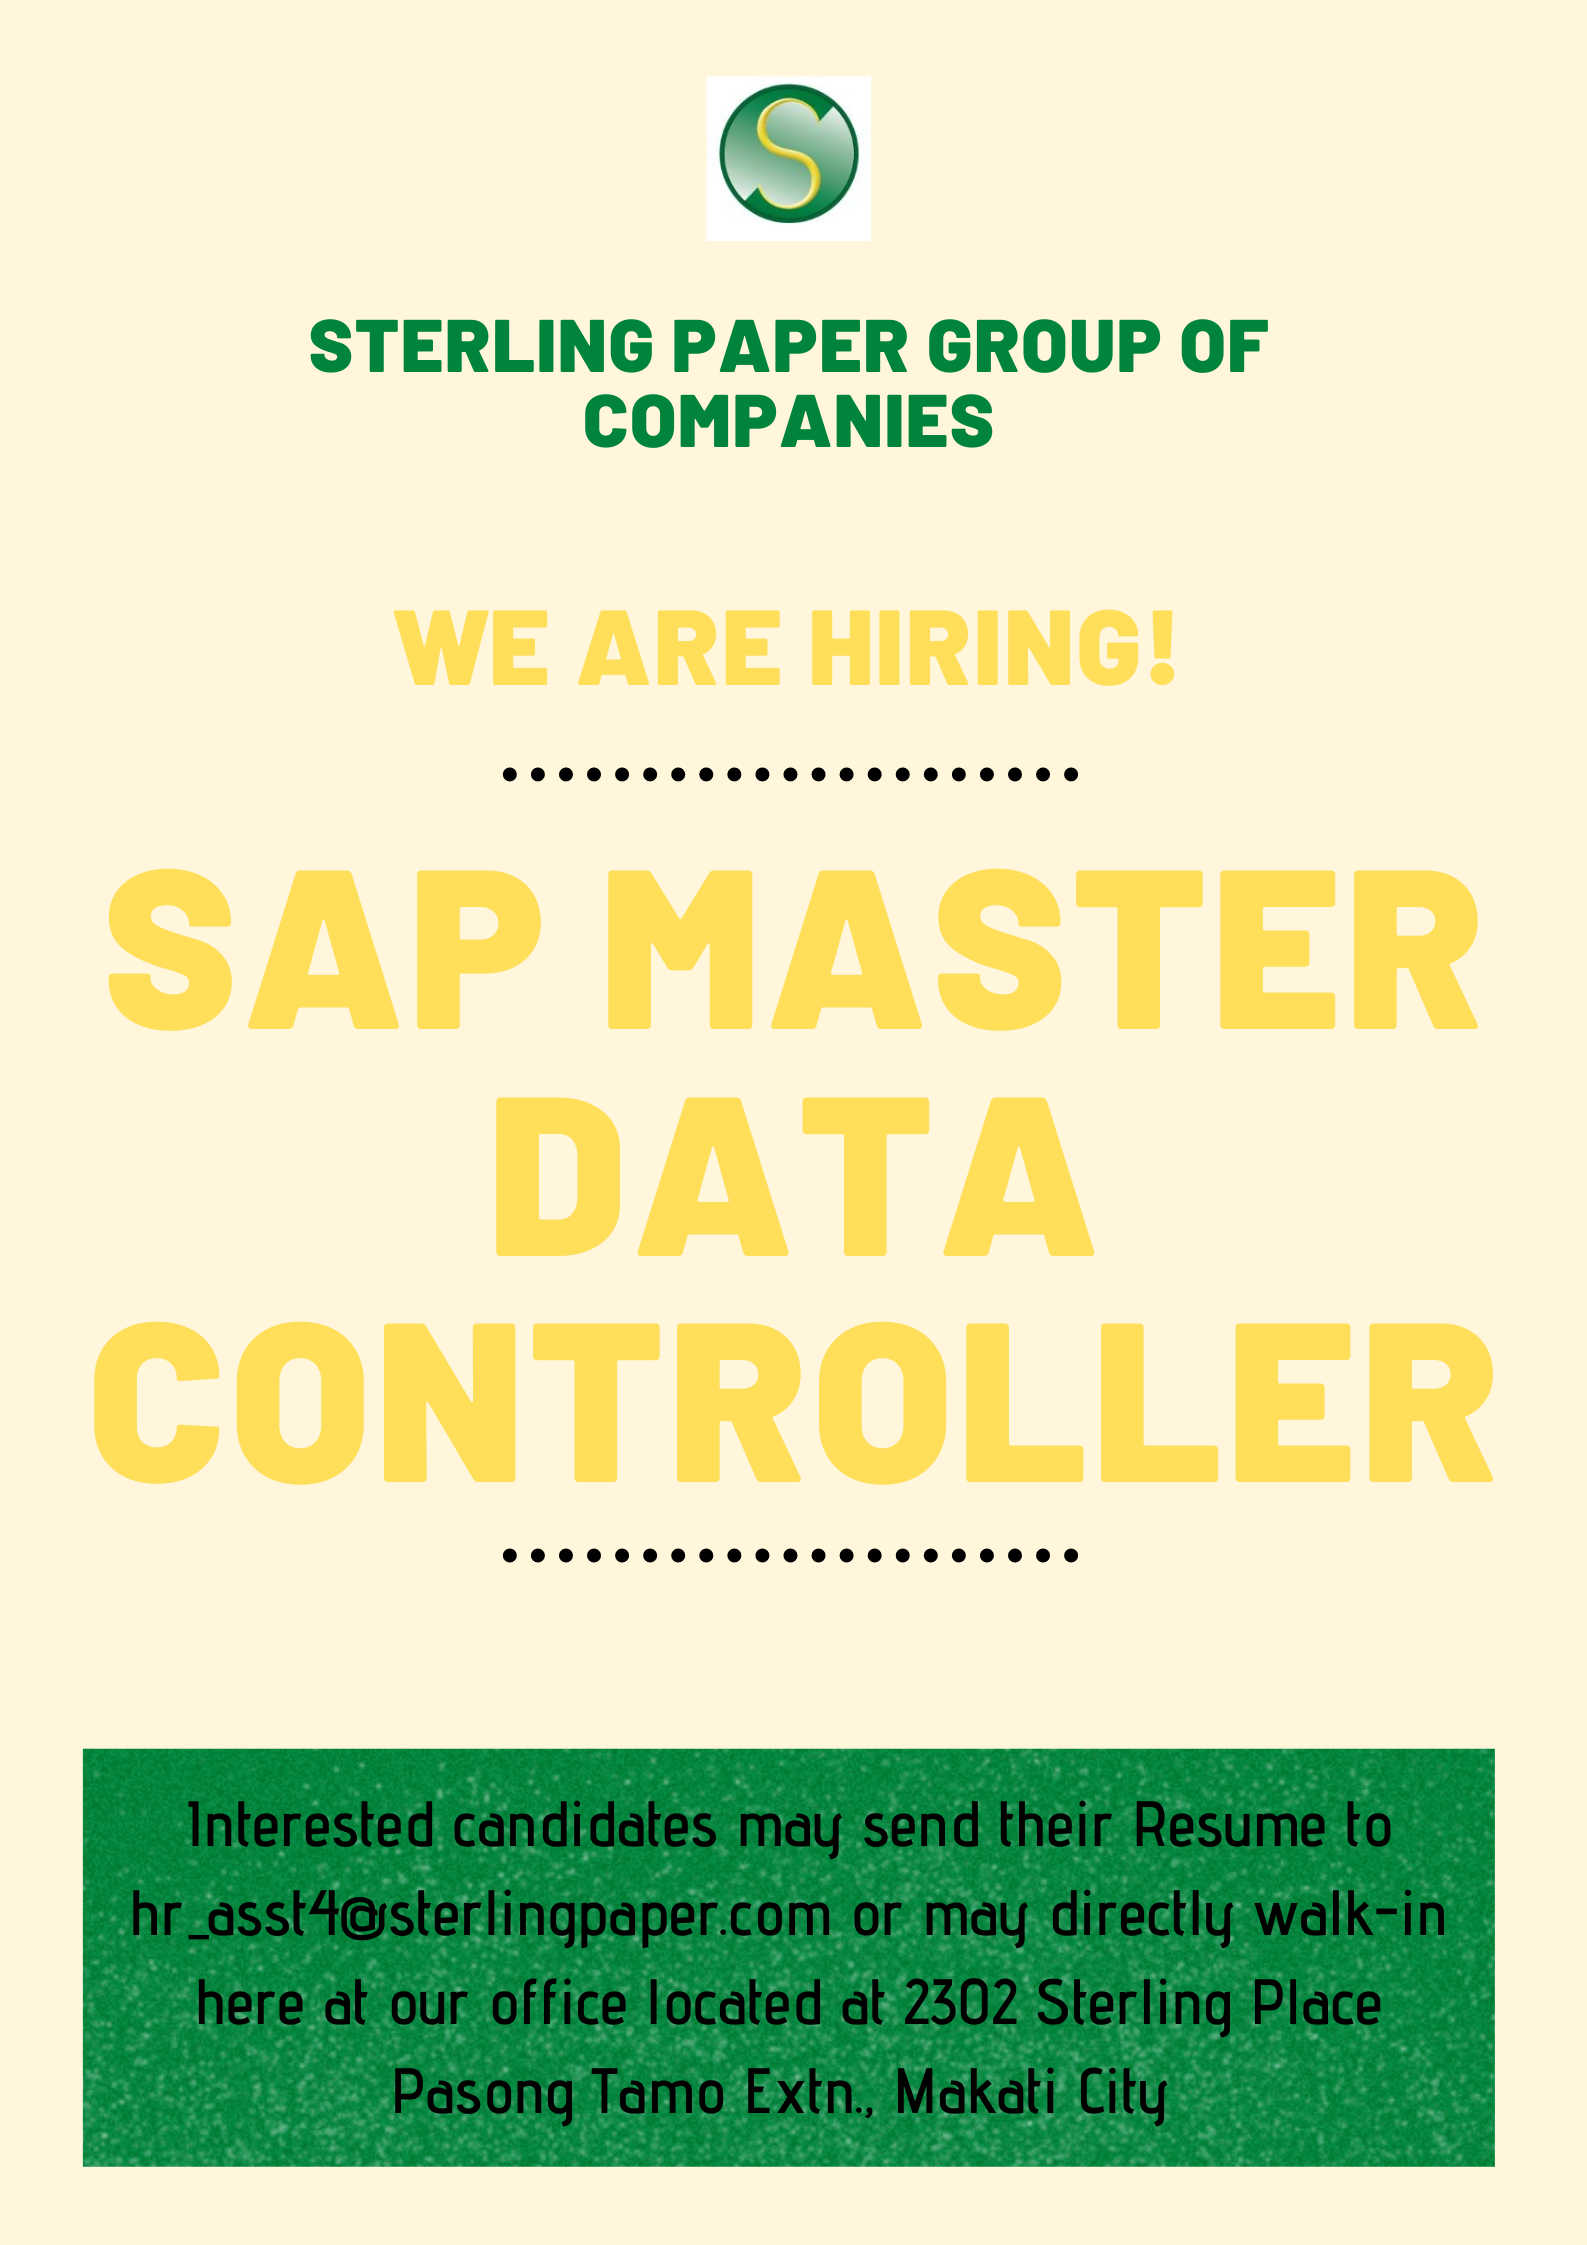 Sap Master Data Controller from STERLING PAPER GROUP OF COMPANIES